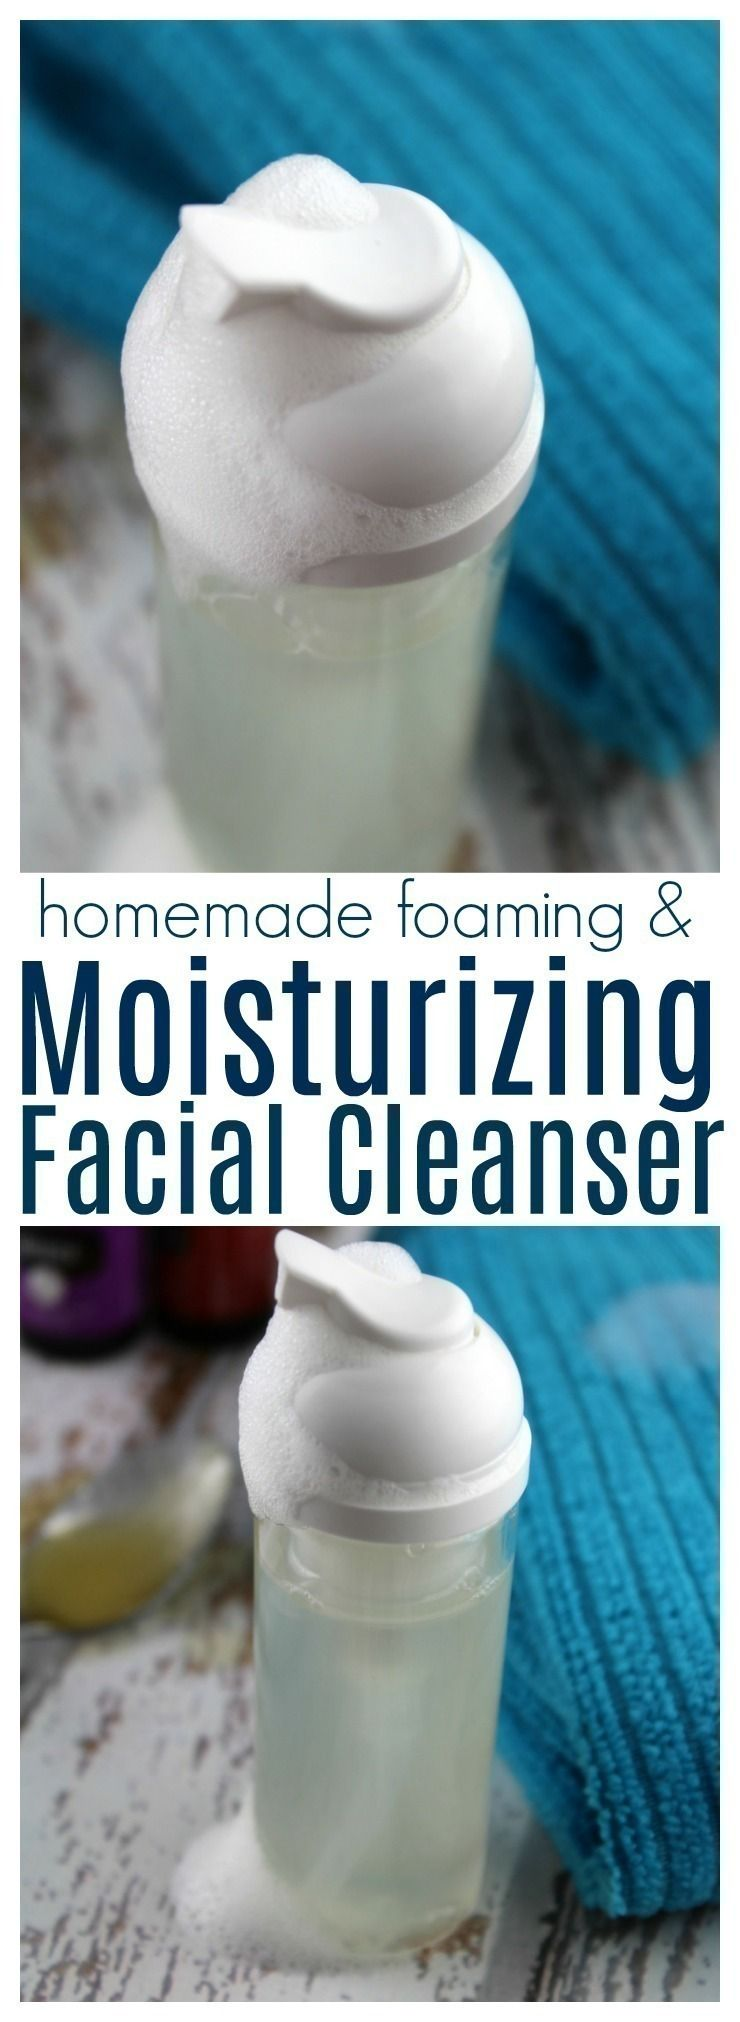 Skin Care facial cleanser